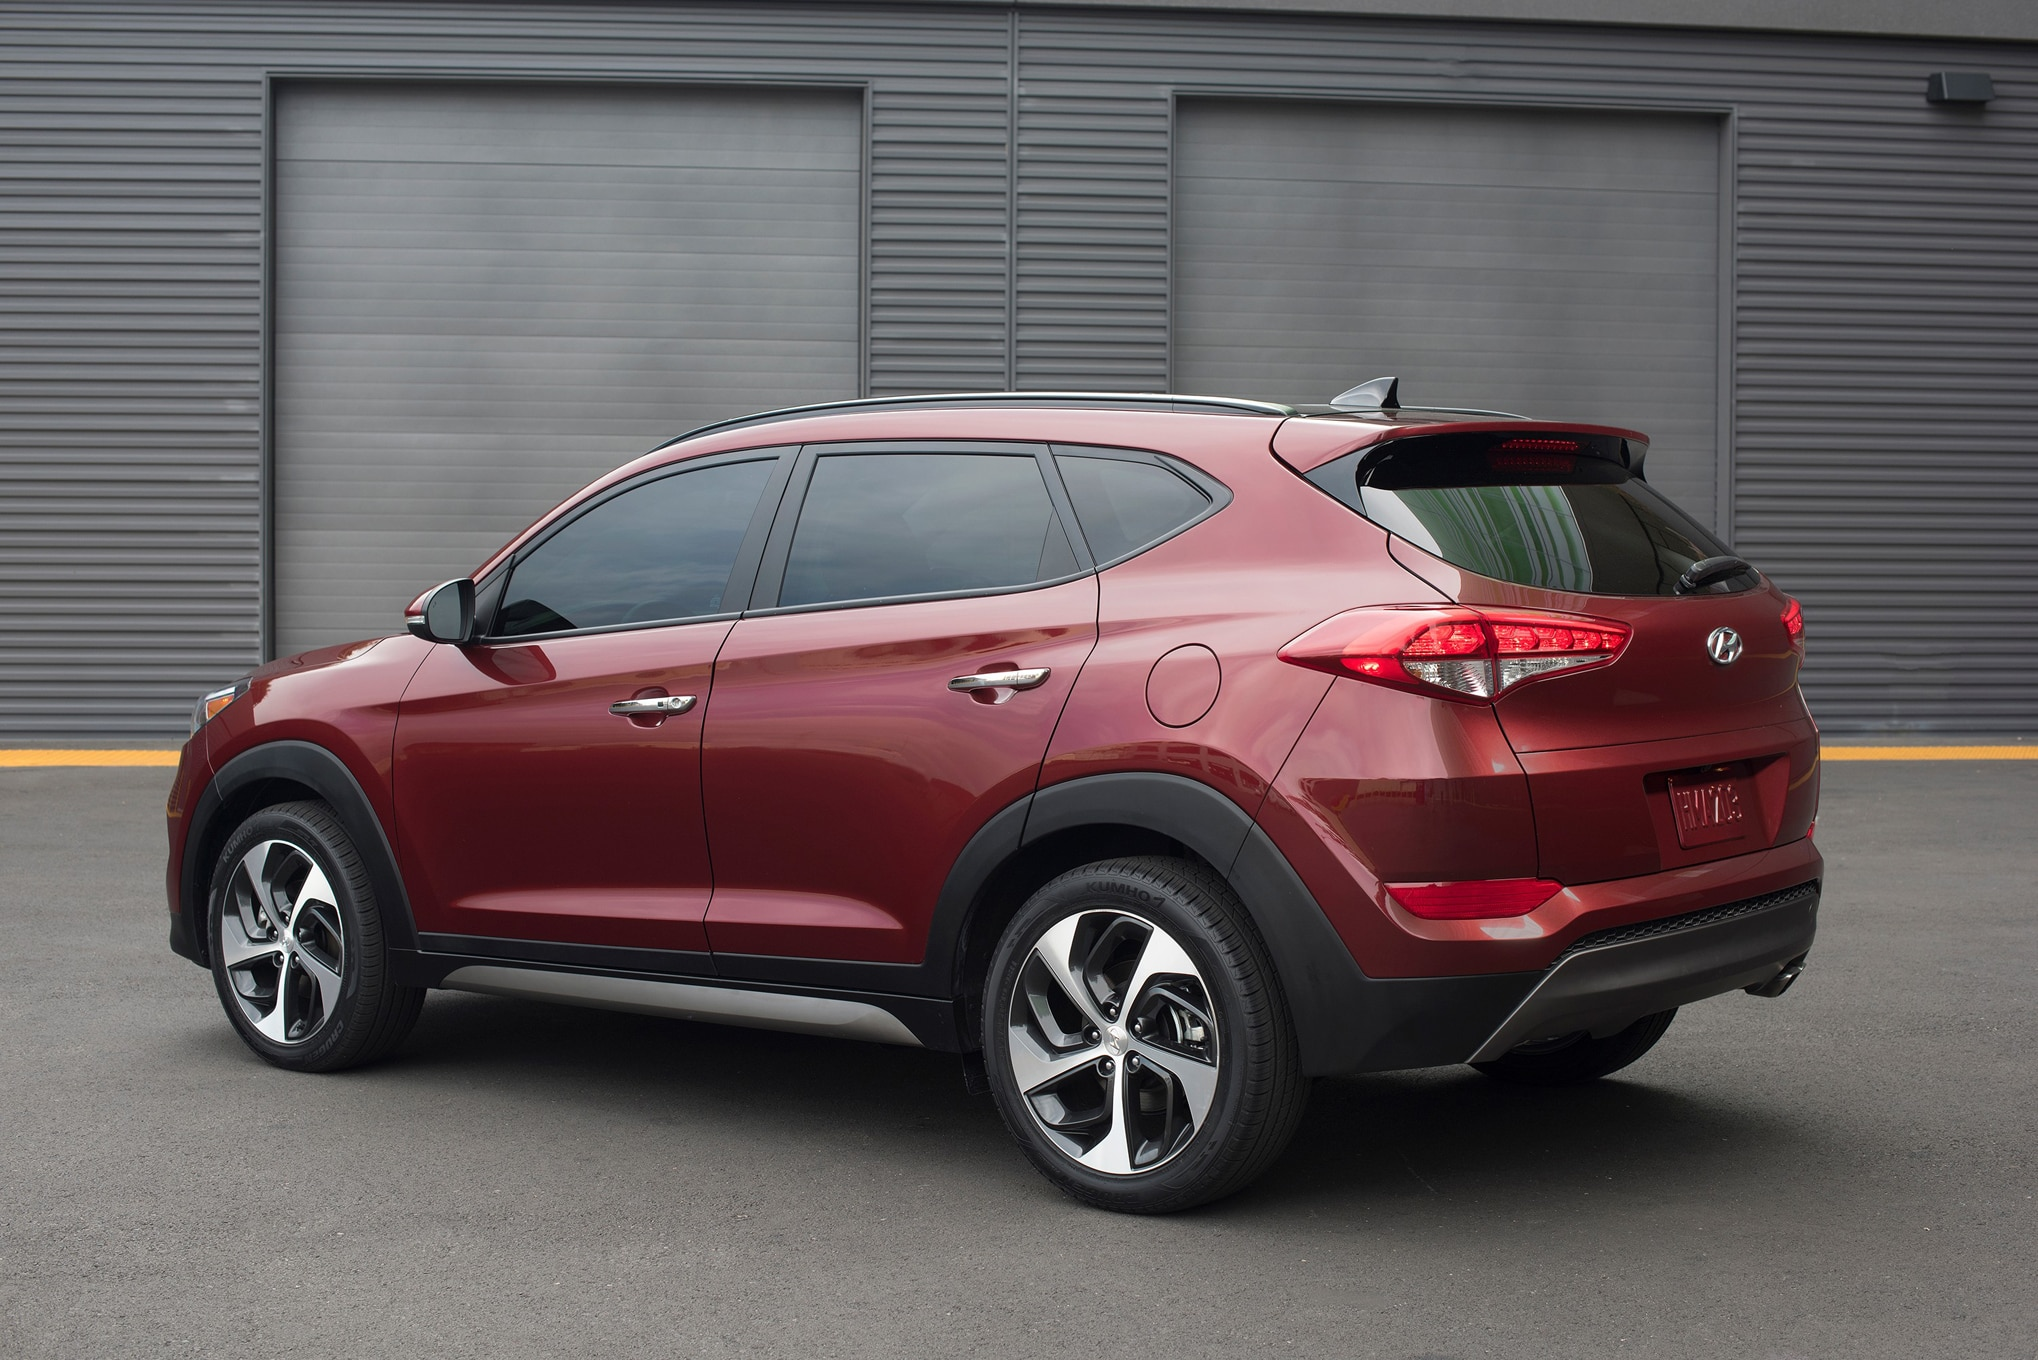 2016 Hyundai Tucson rear three quarter 032 2016 hyundai tucson starts at $23,595 photo gallery 2016 Hyundai Tucson Interior at crackthecode.co